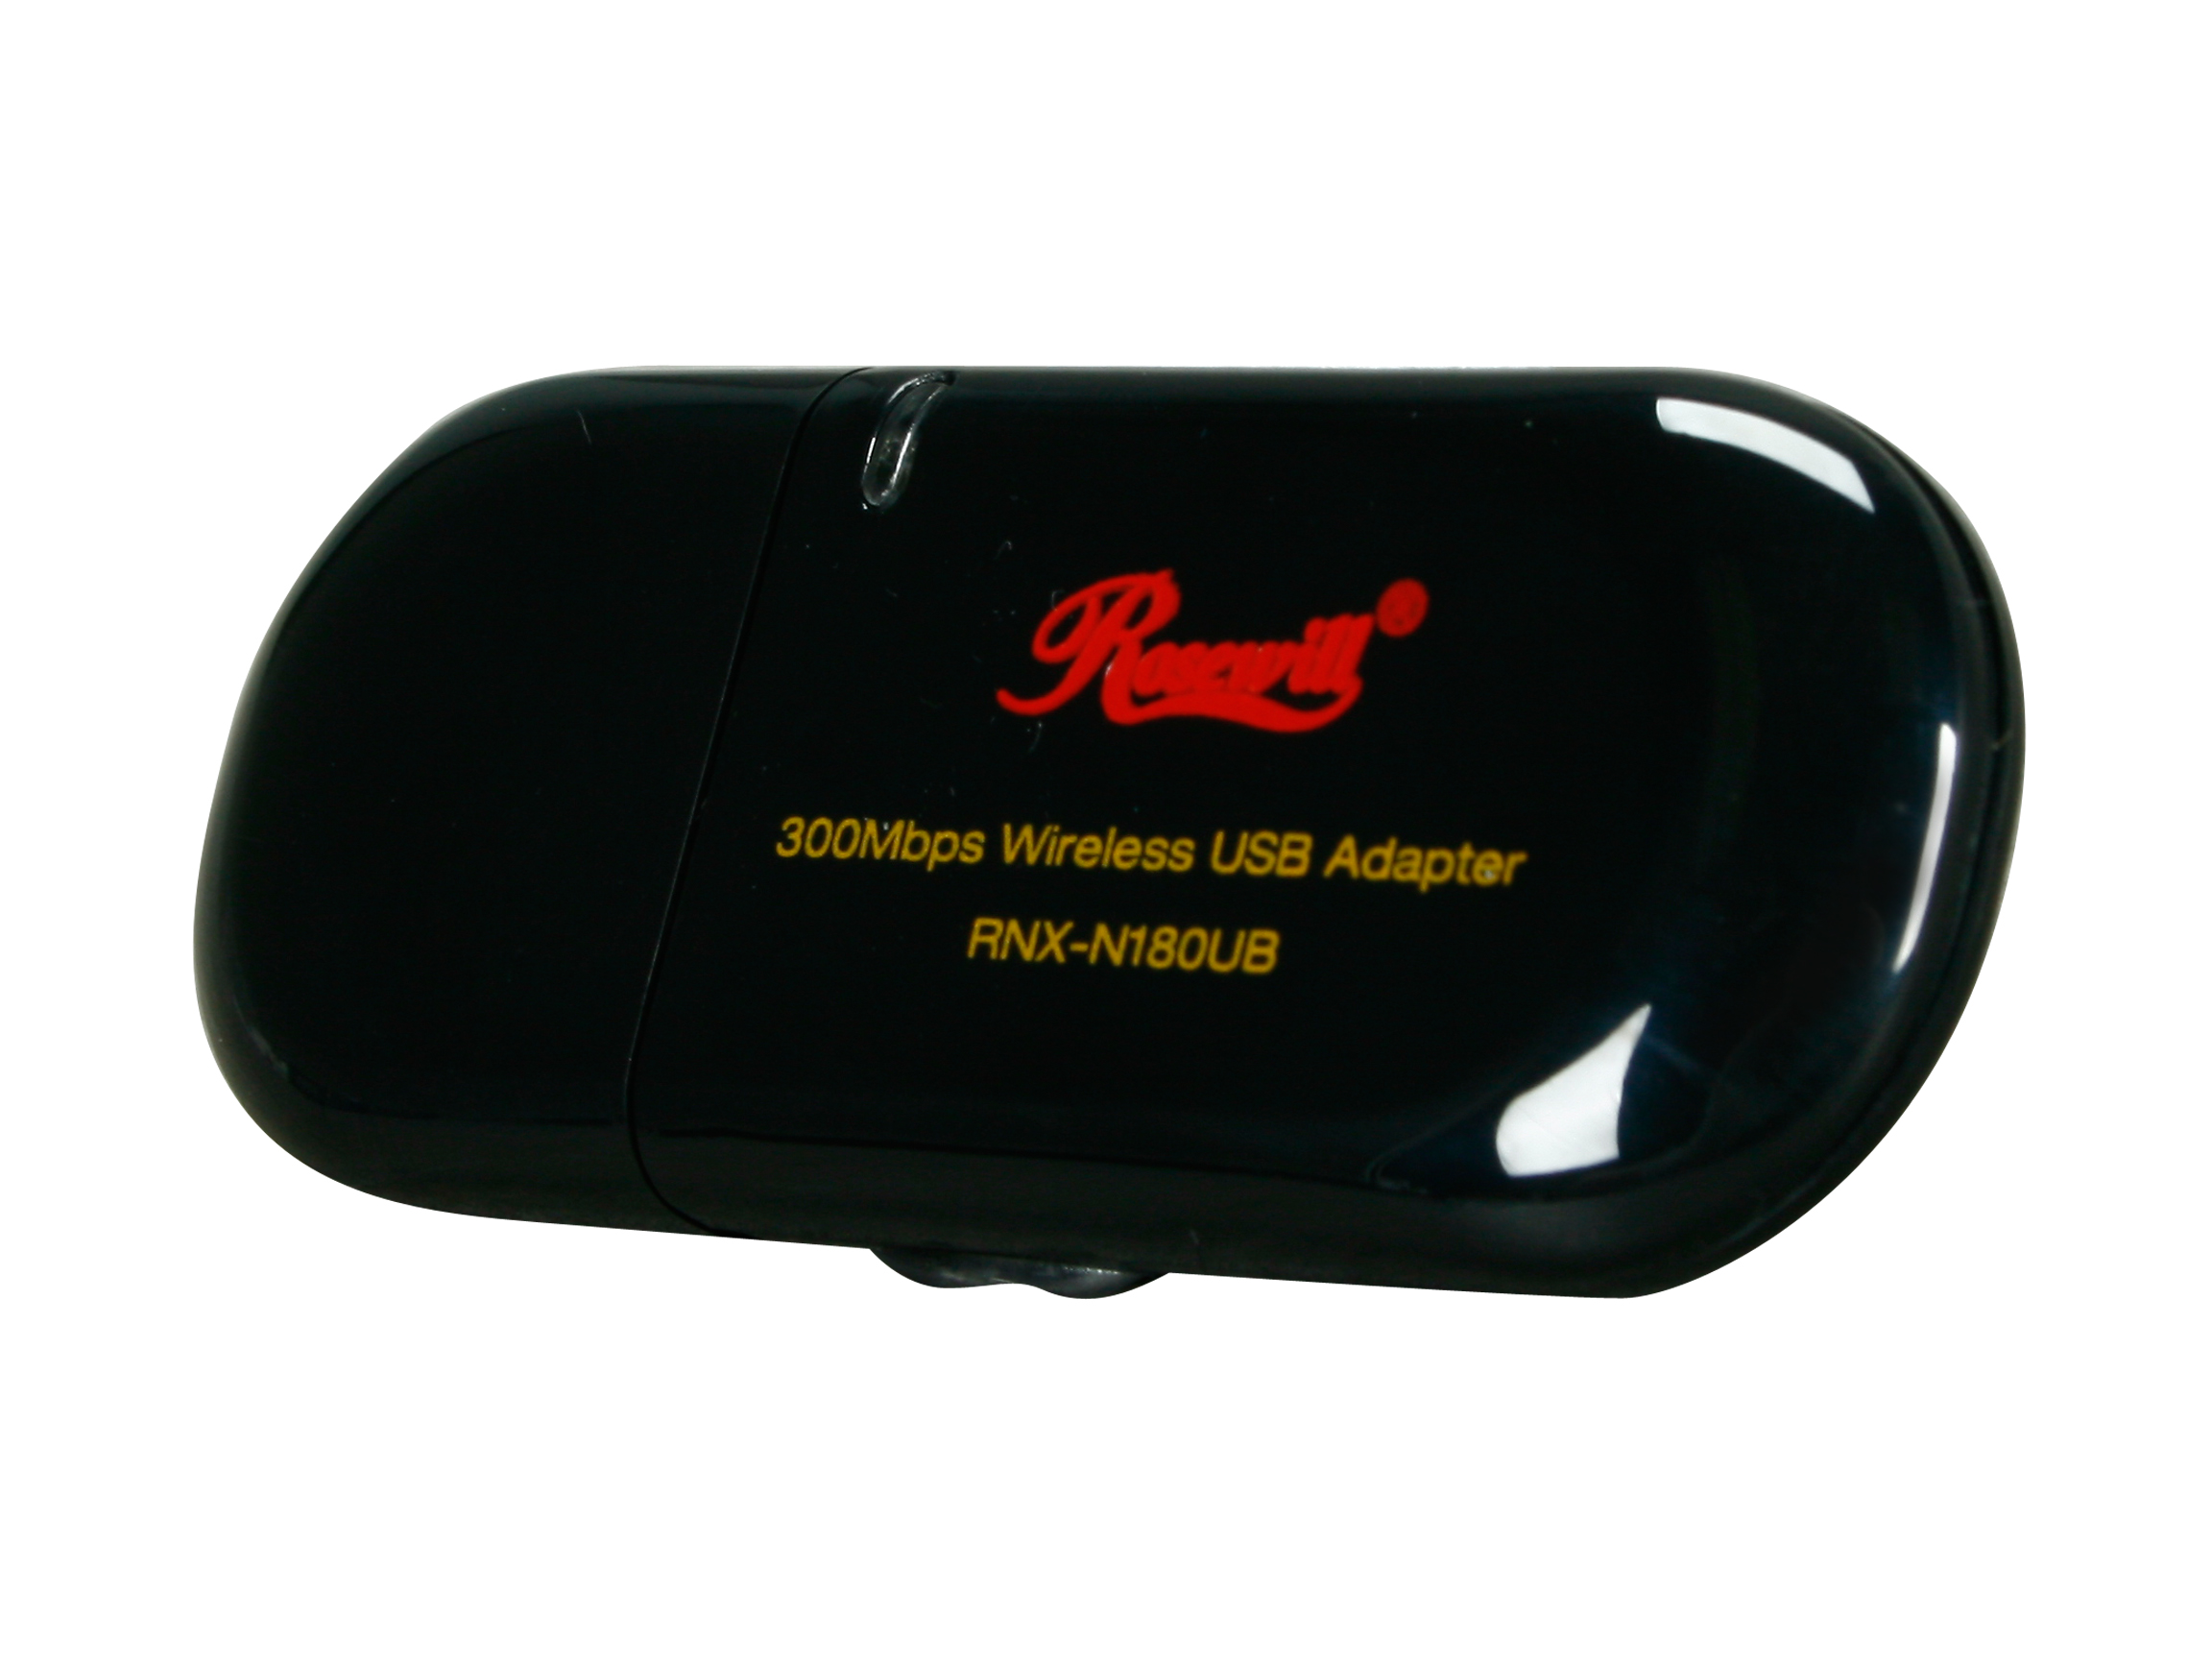 Rosewill 300Mbps Wireless N USB Adapter